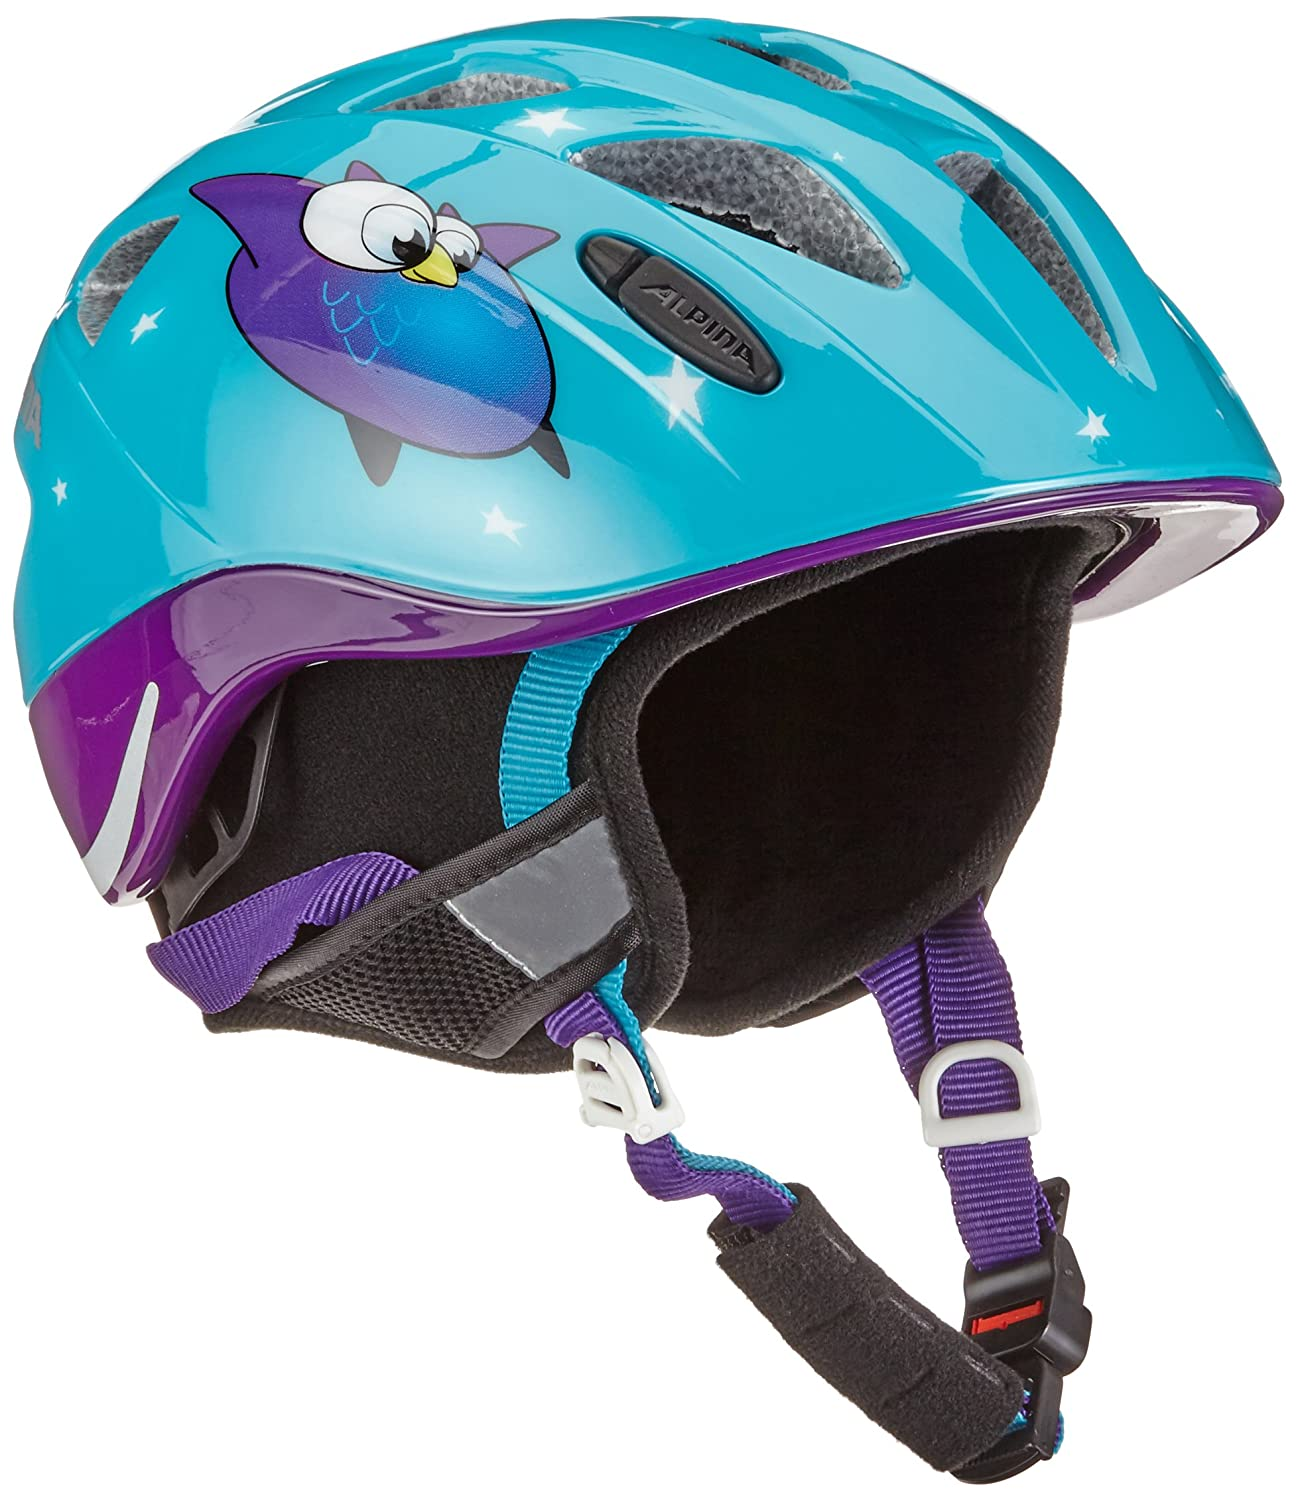 Alpina Kinder Radhelm Ximo Flash Winter Fahrradhelm